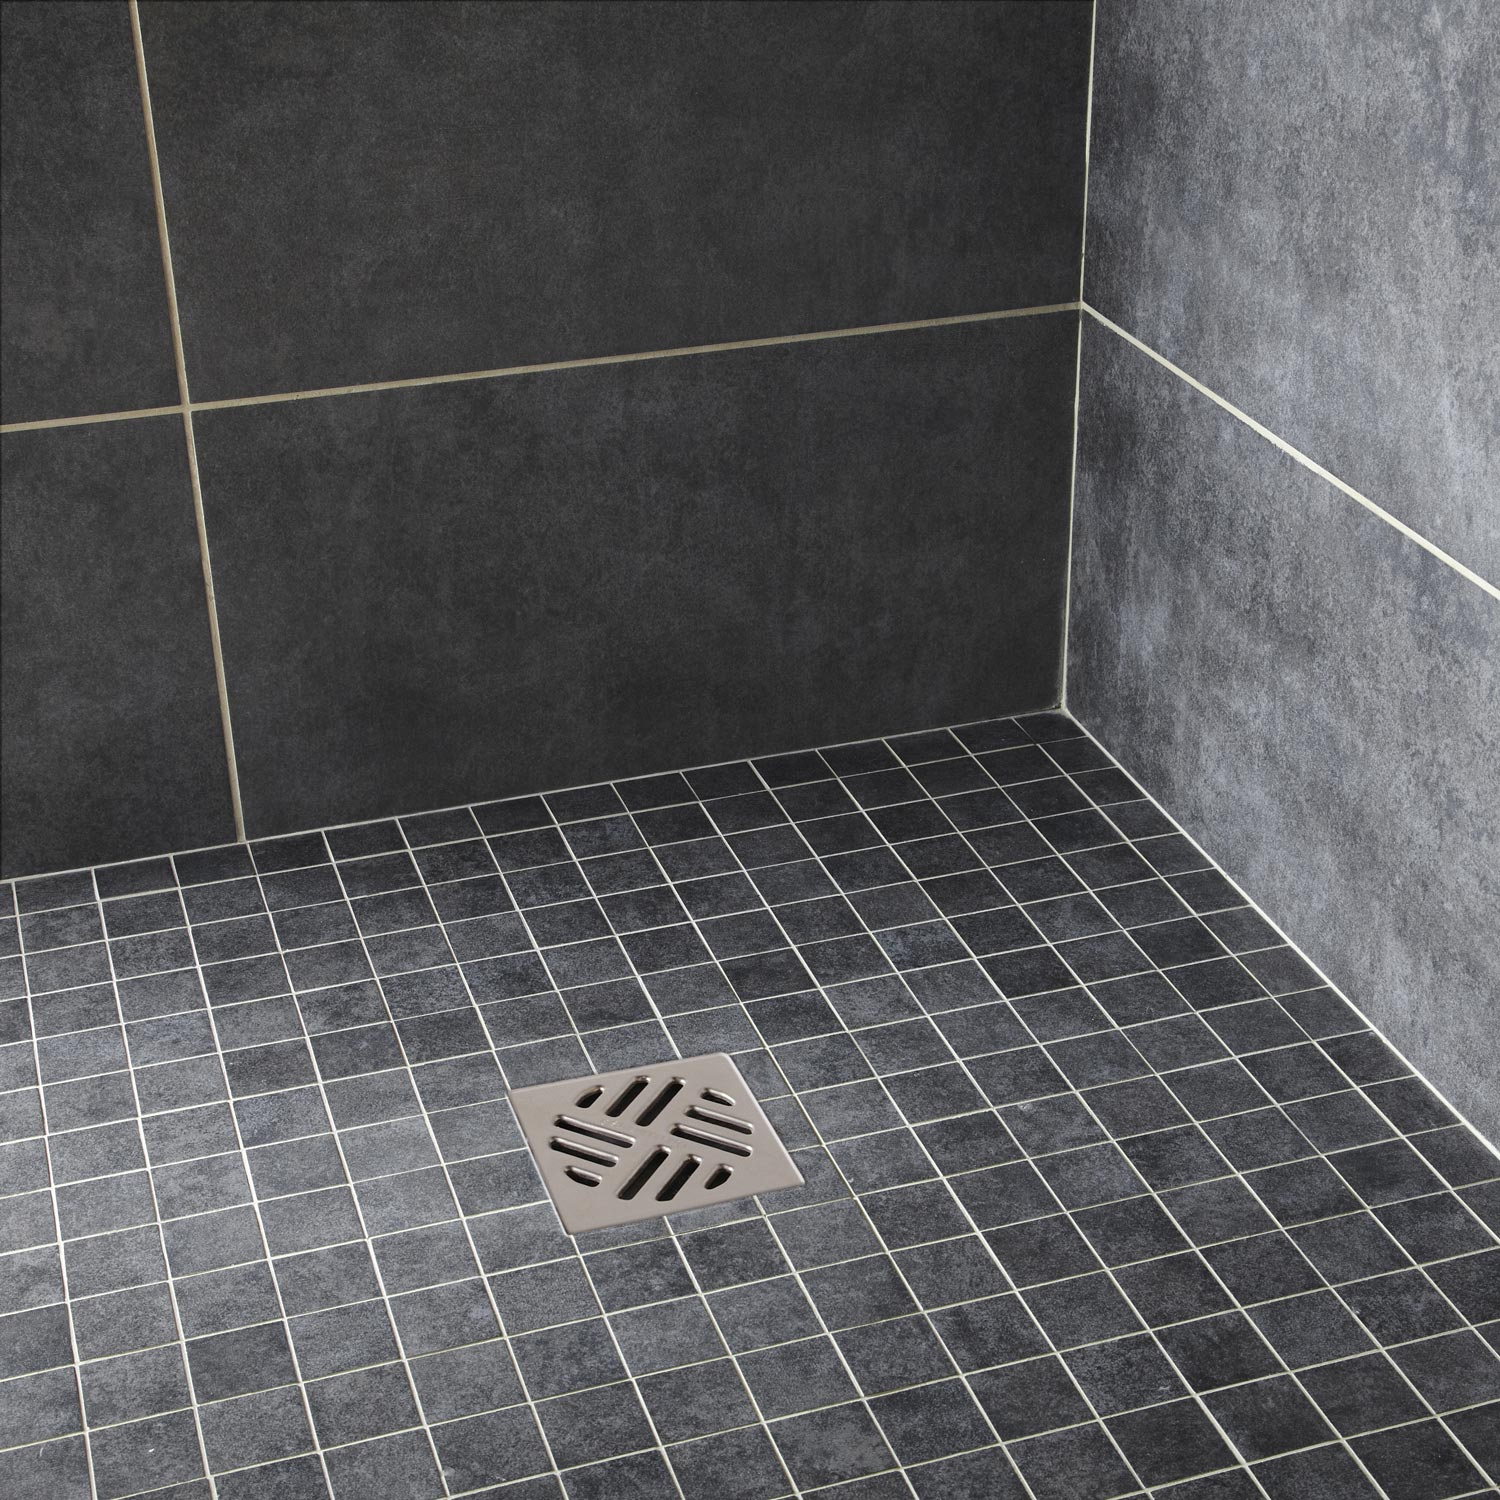 Salle de bain travertin leroy merlin - Carrelage douche leroy merlin ...